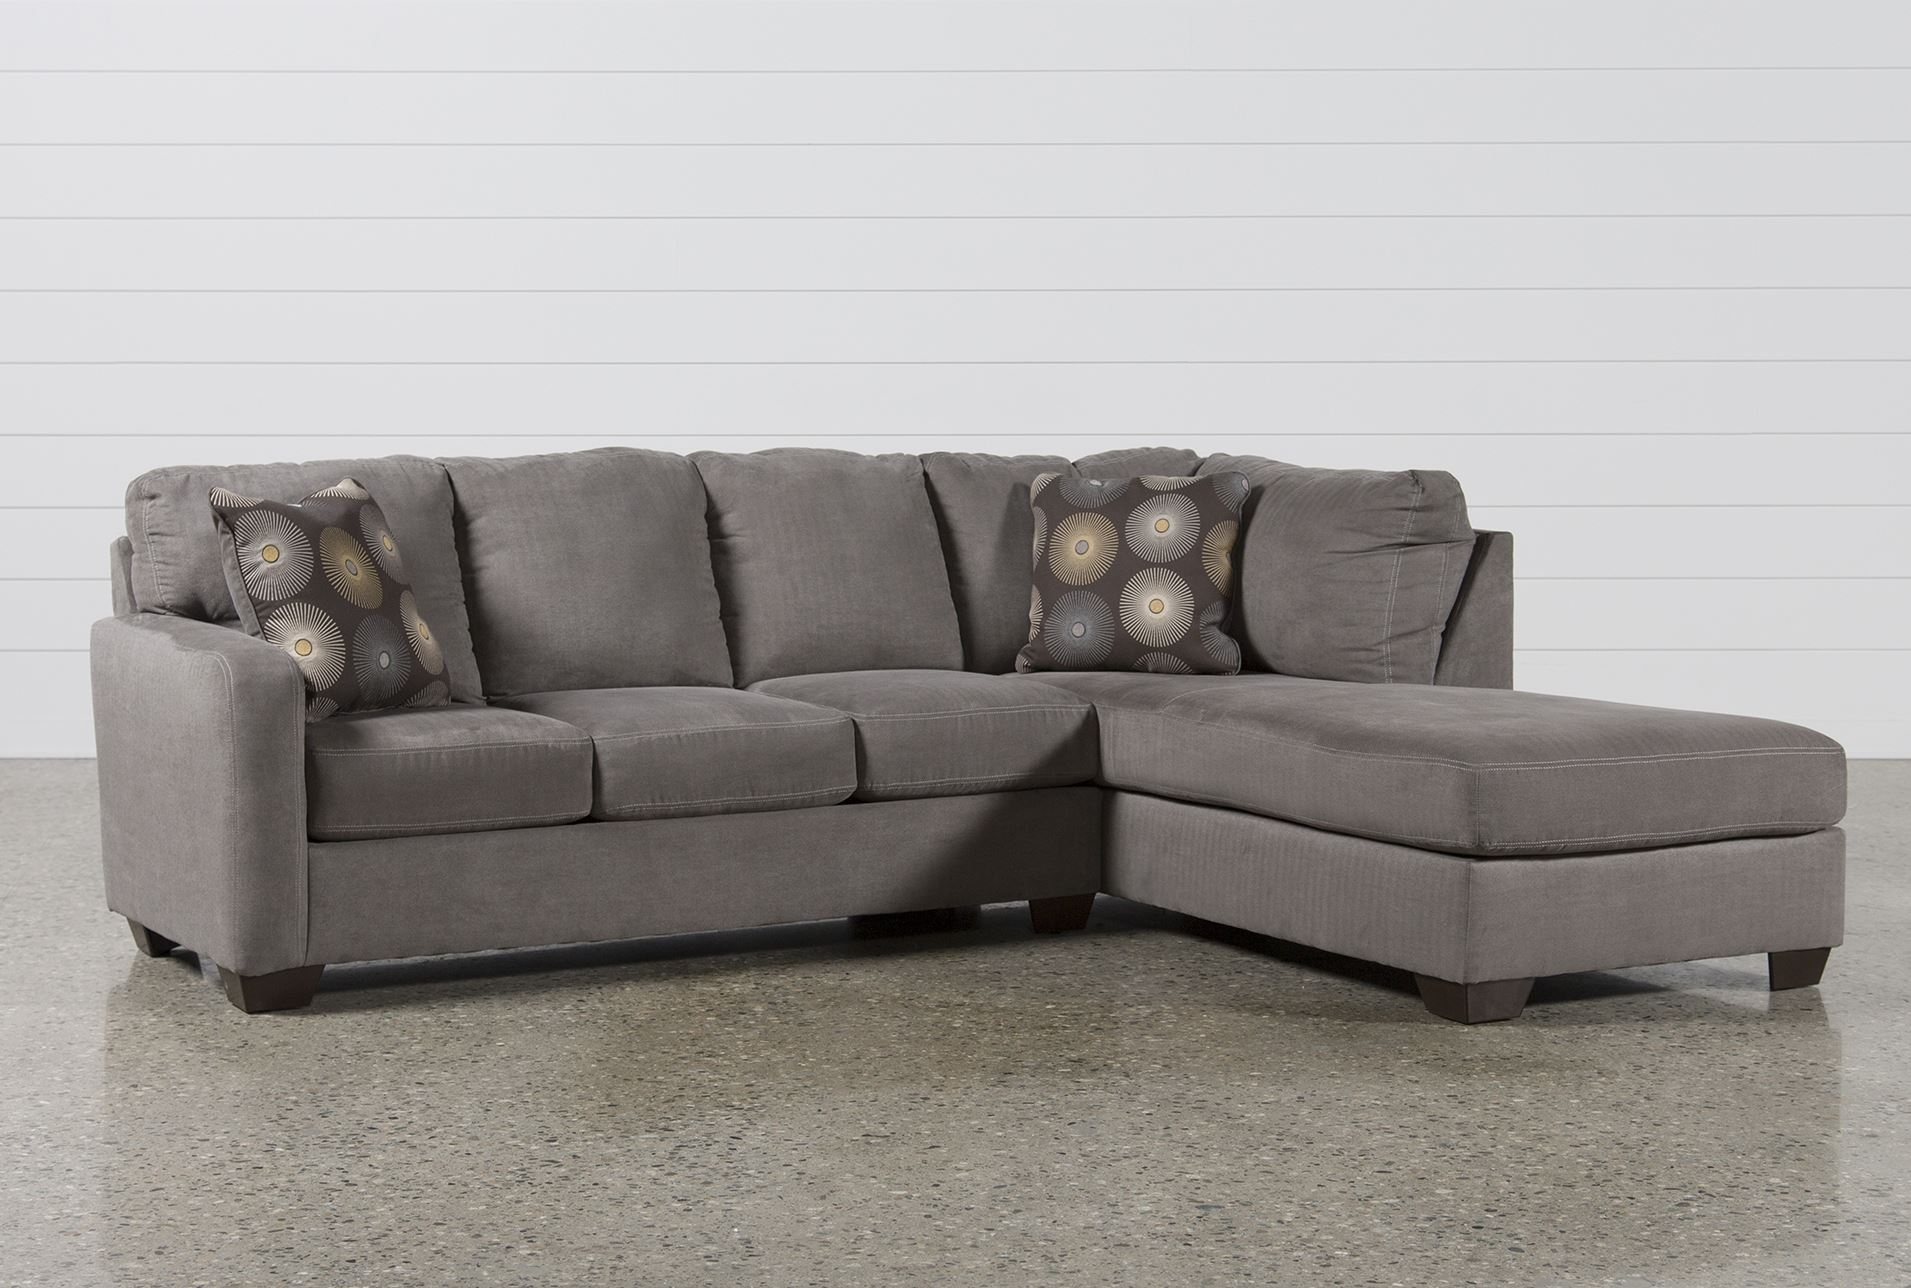 2 Piece Sectional Sofa (14 Photos) | Clubanfi In Living Spaces Sectional Sofas (View 8 of 10)